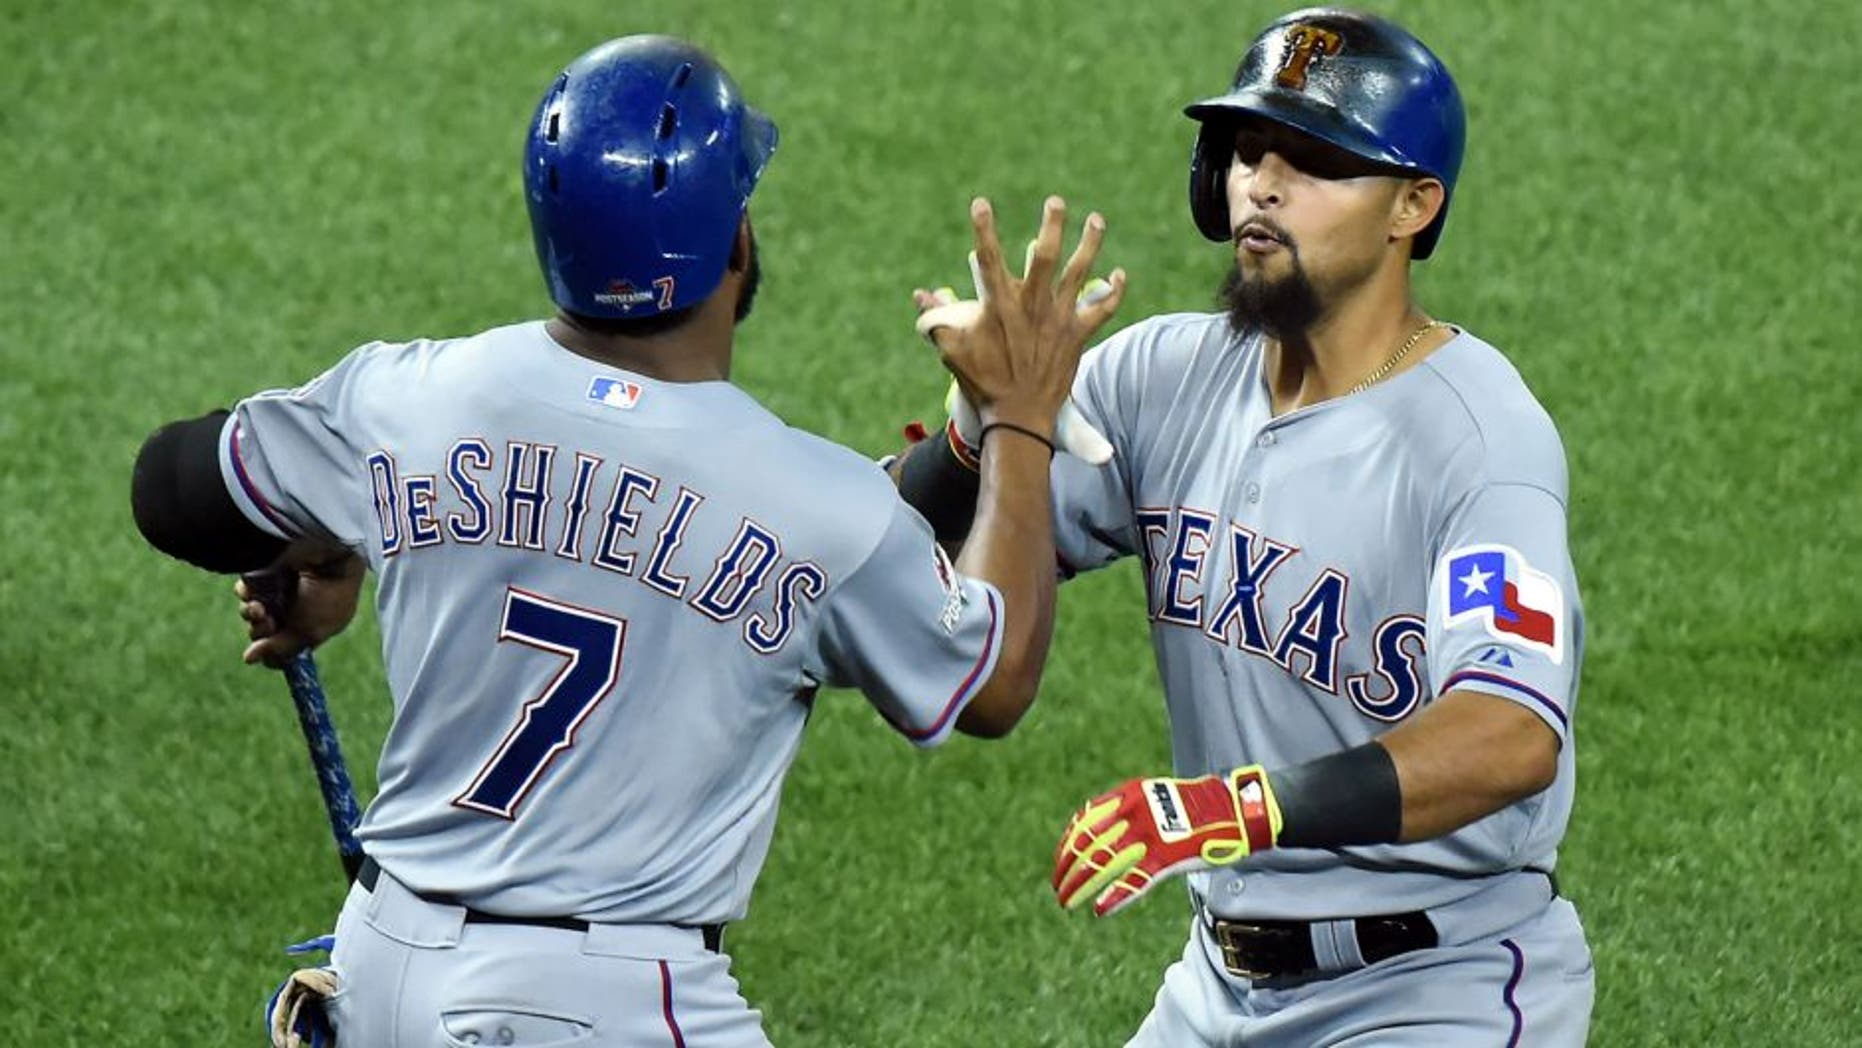 Oct 8, 2015; Toronto, Ontario, CAN; Texas Rangers second baseman Rougned Odor (right) celebrates with center fielder Delino DeShields (7) after hitting a solo home run against the Toronto Blue Jays in the 7th inning in game one of the ALDS at Rogers Centre. Mandatory Credit: Dan Hamilton-USA TODAY Sports